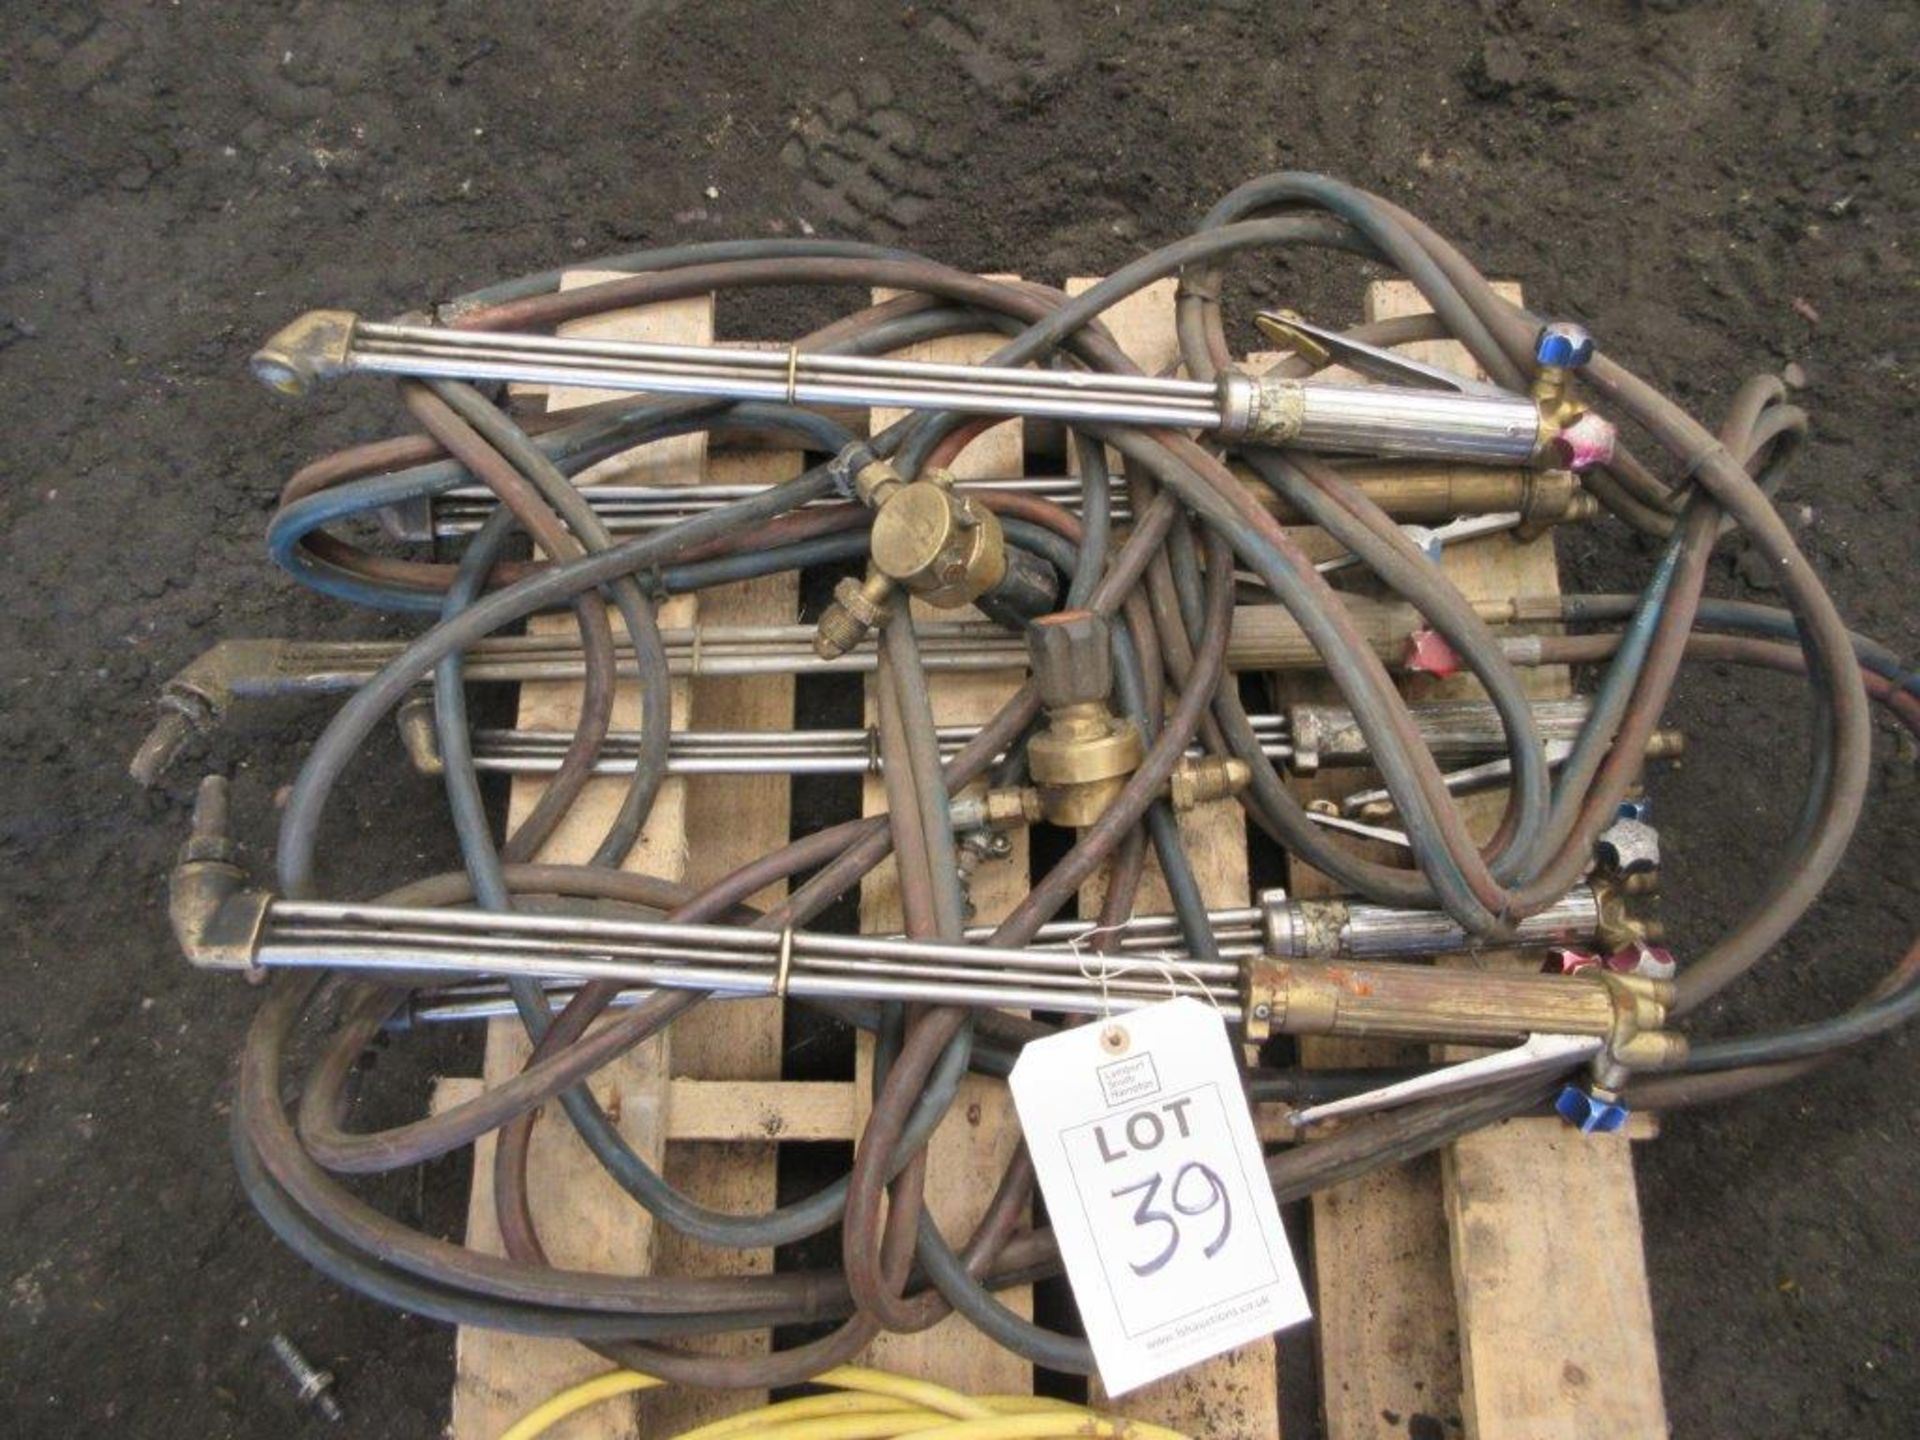 Lot 39 - 7 used and 1 as new oxyacetylene gas torches and 1 electric extension cable